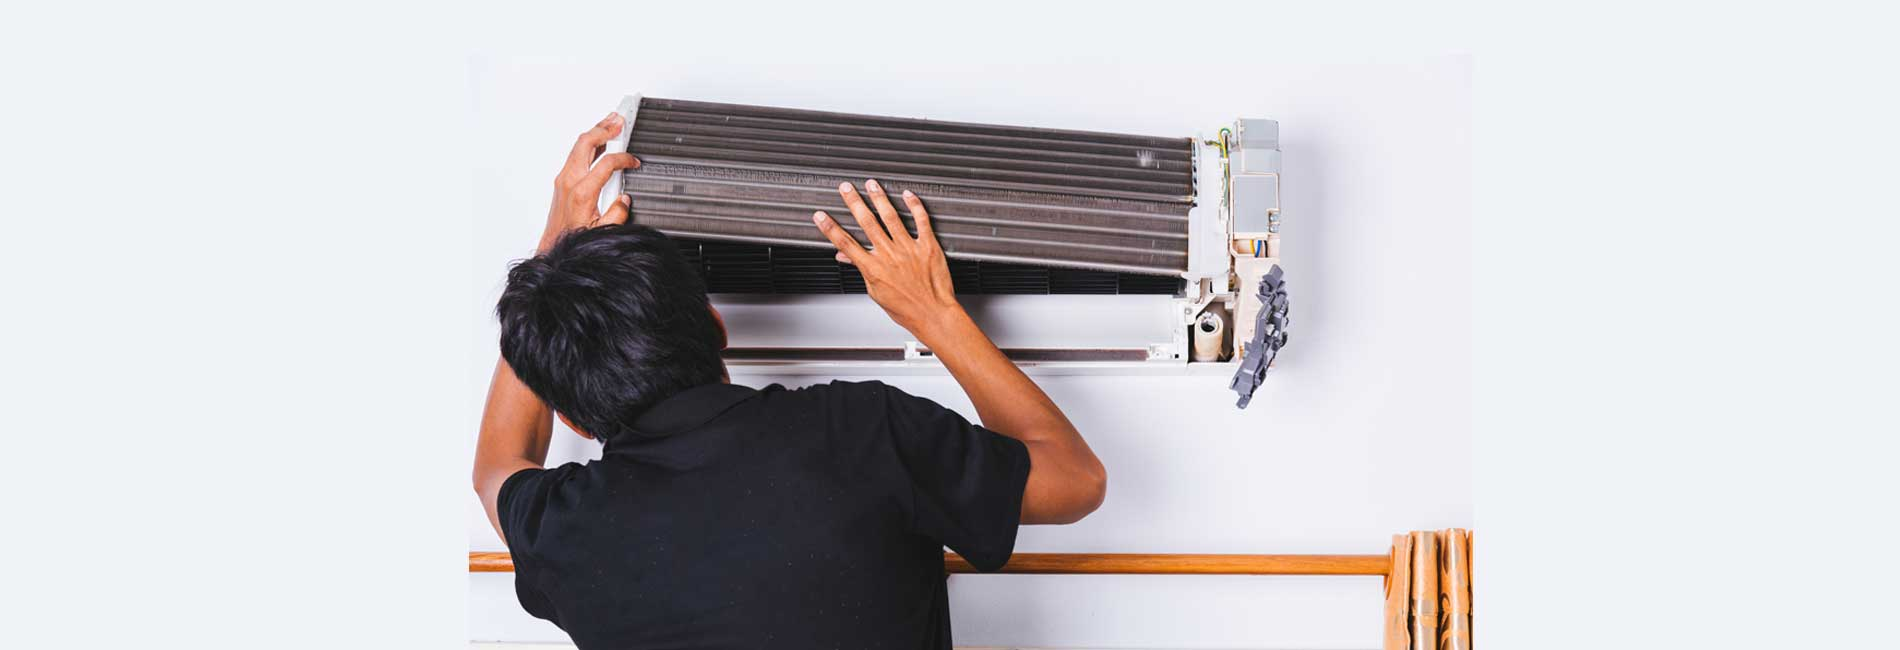 Air Conditioner Repair in Sunnambu kolathur